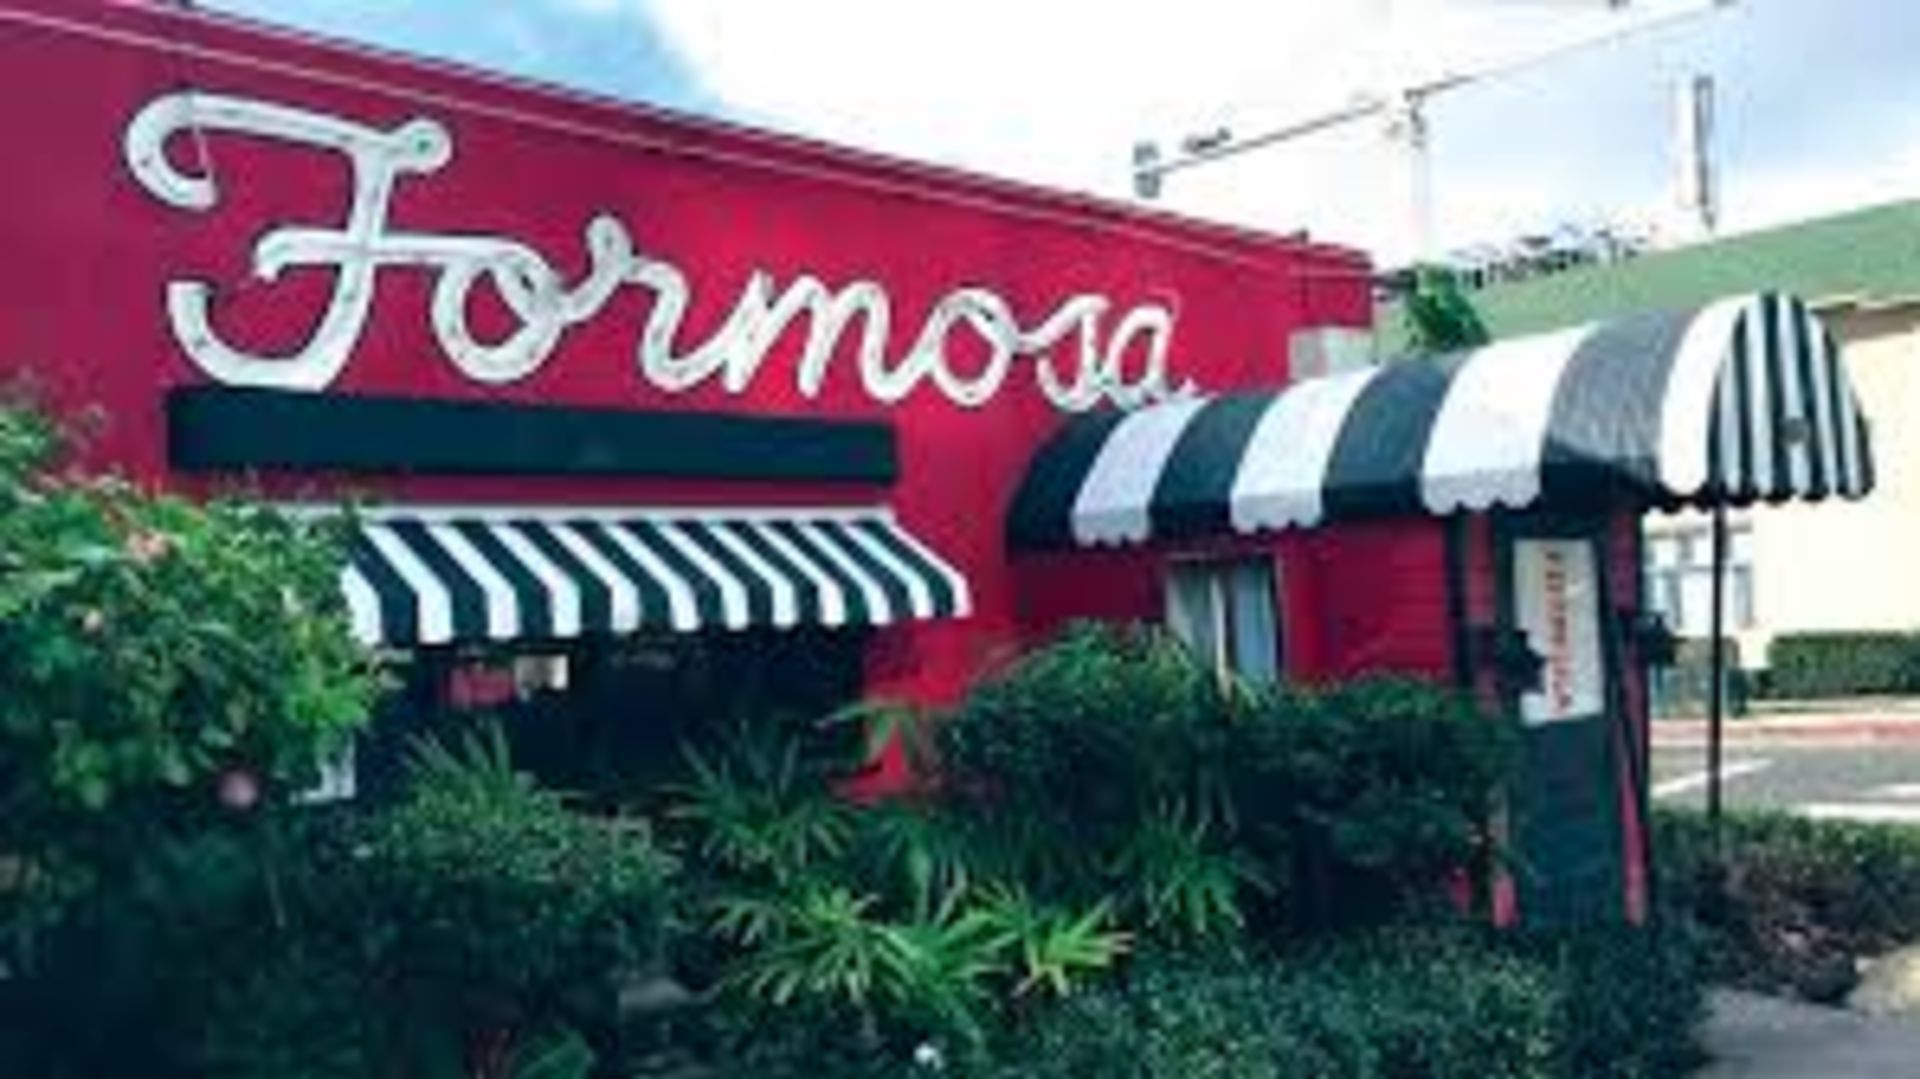 Formosa Cafe's new operators reveal details about plans to reopen the historic restaurant 3 The 1933 Group plans to restore vintage elements and decor